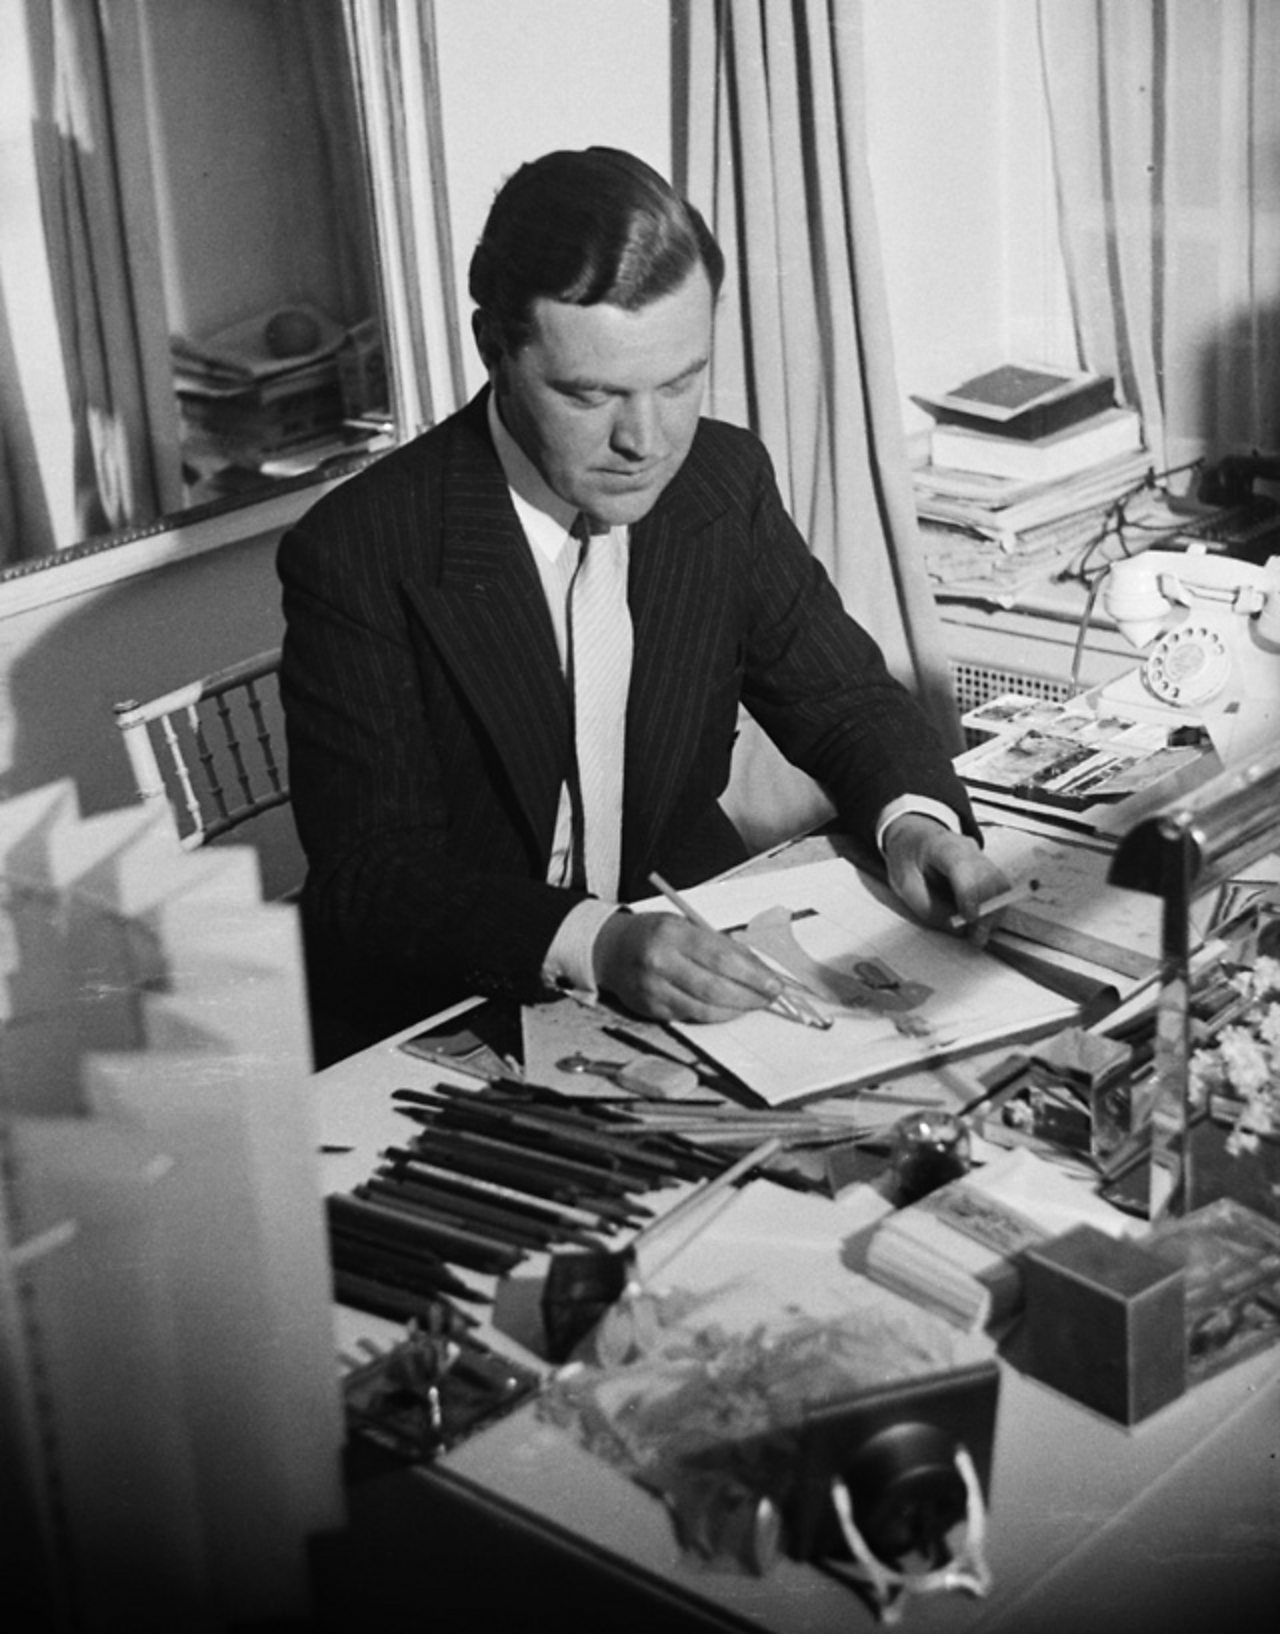 Norman Hartnell, an important designer, designing clothes at his desk.